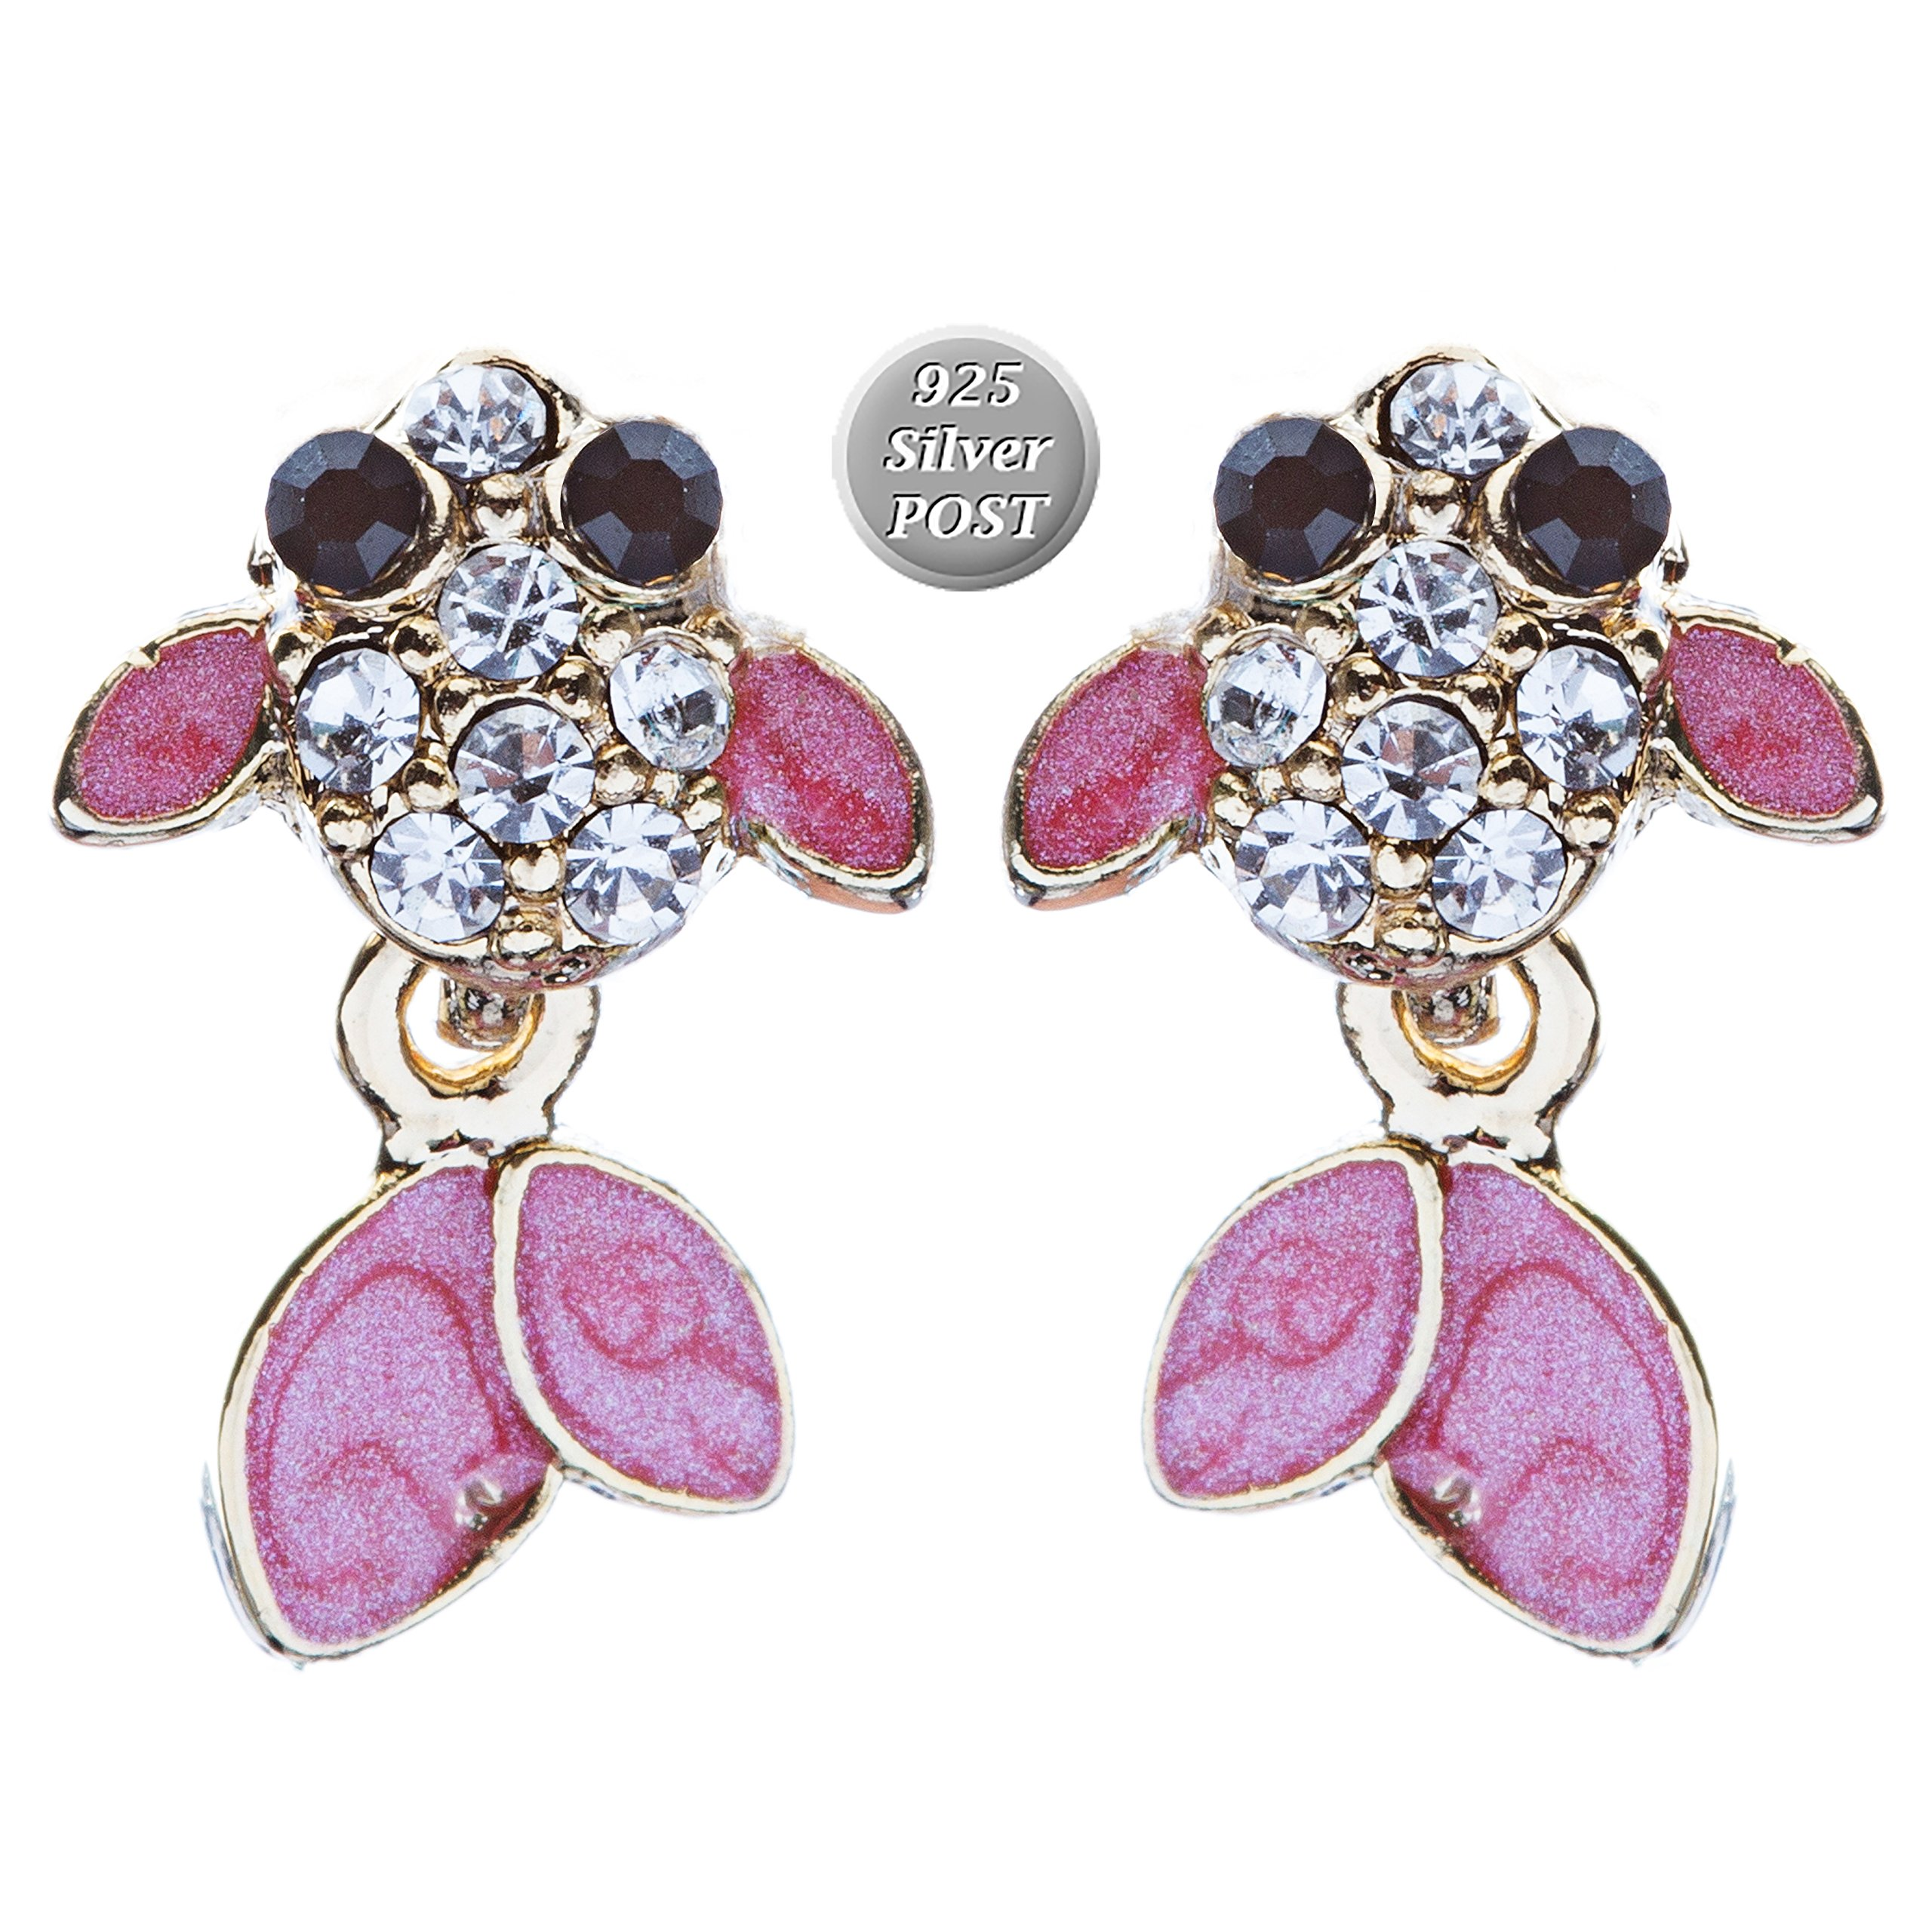 ACCESSORIESFOREVER Adorable Crystal Accent Fish Tiny Stud Style Fashion Earrings E504 Gold Pink